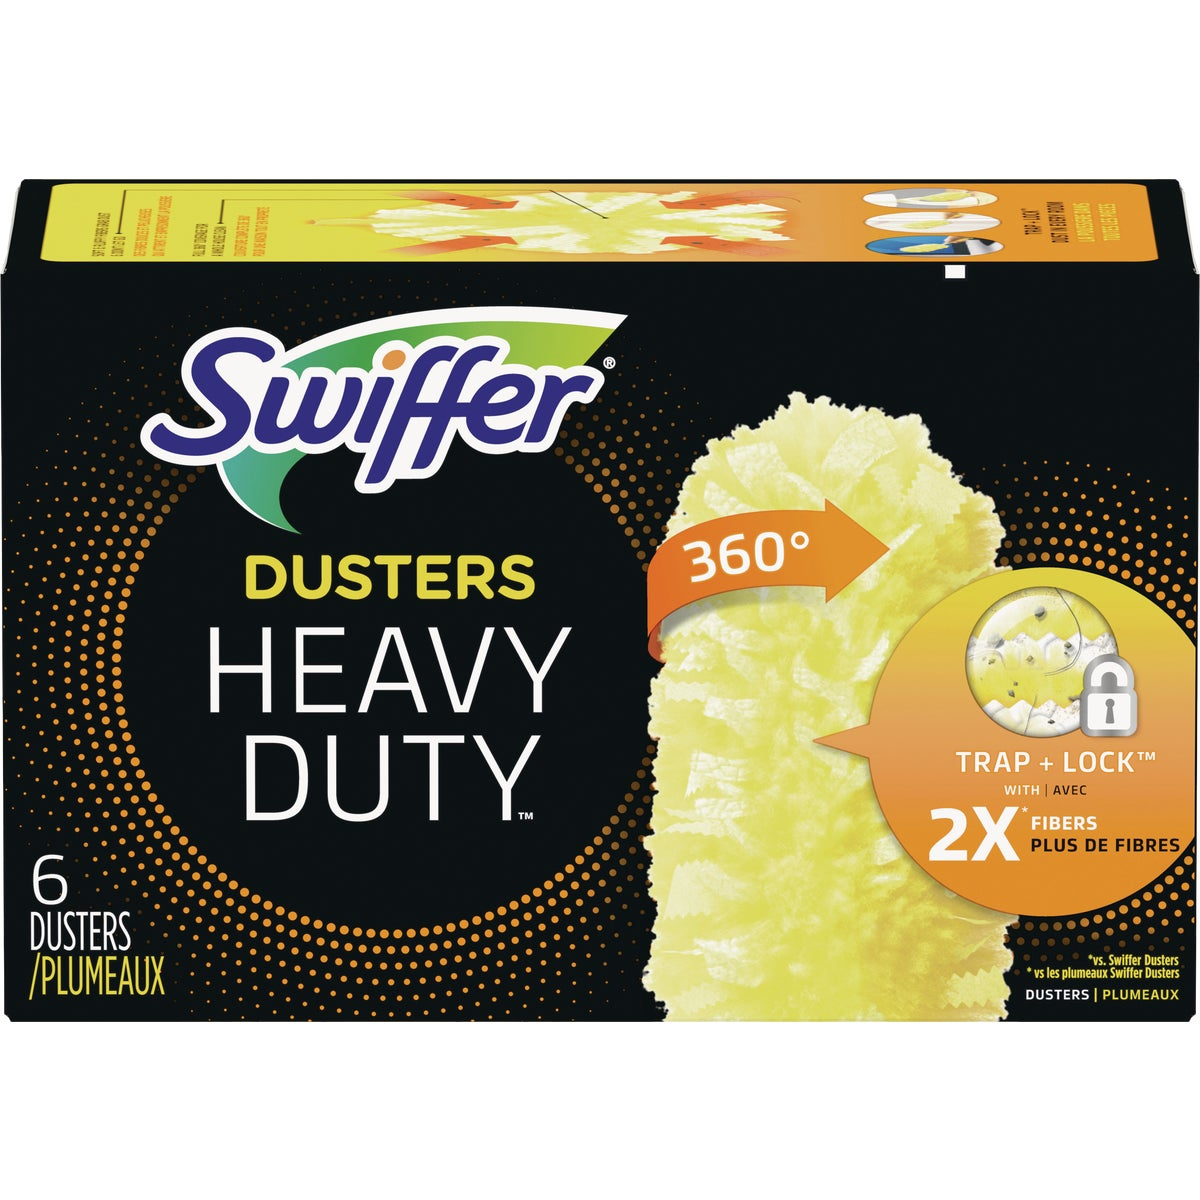 6CT DUSTER REFILL - 16944 by Procter & Gamble